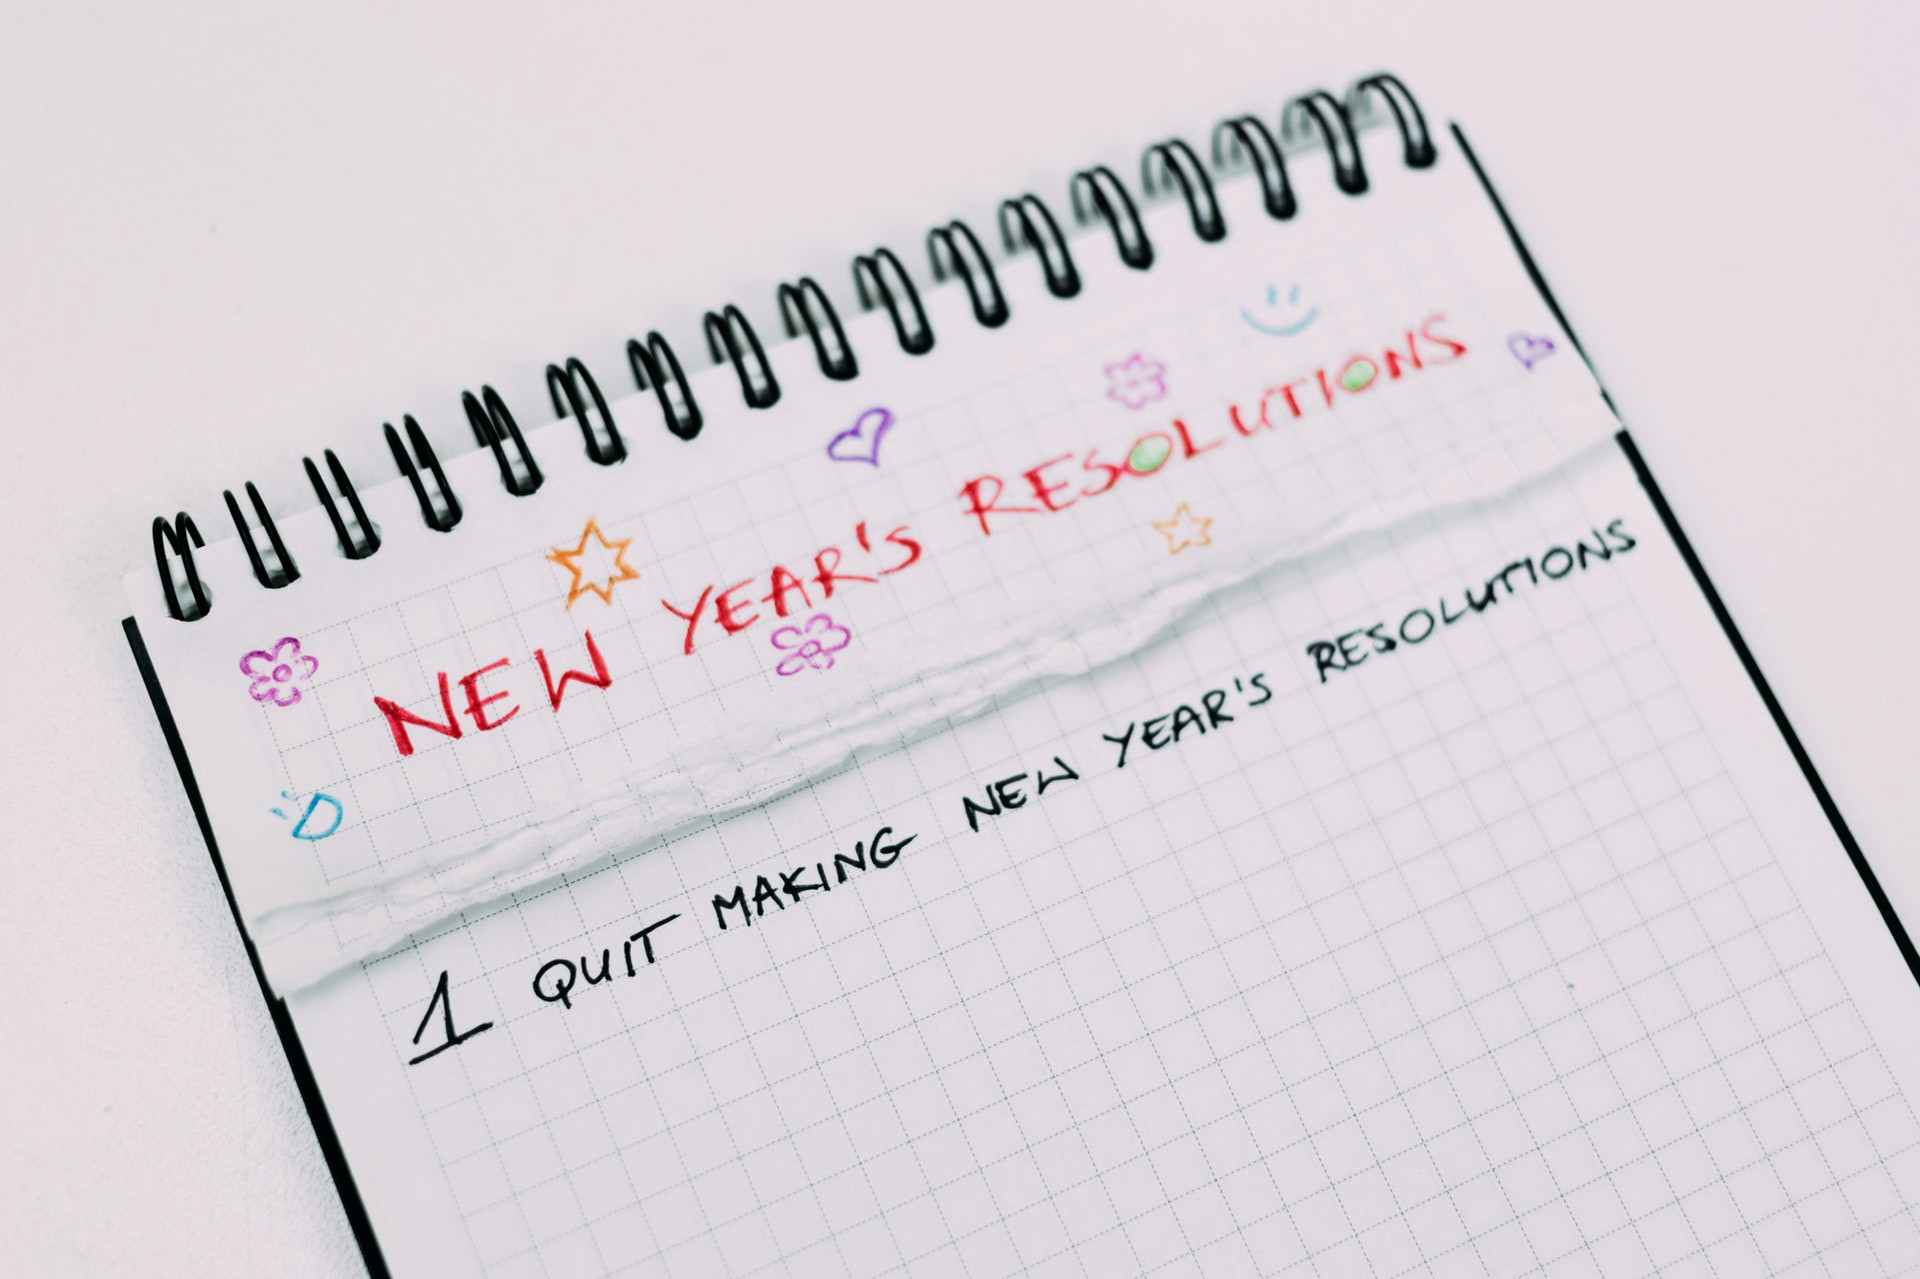 New Years Resolutions Are A Waste Of Time Gid M K Health Nerd Medium